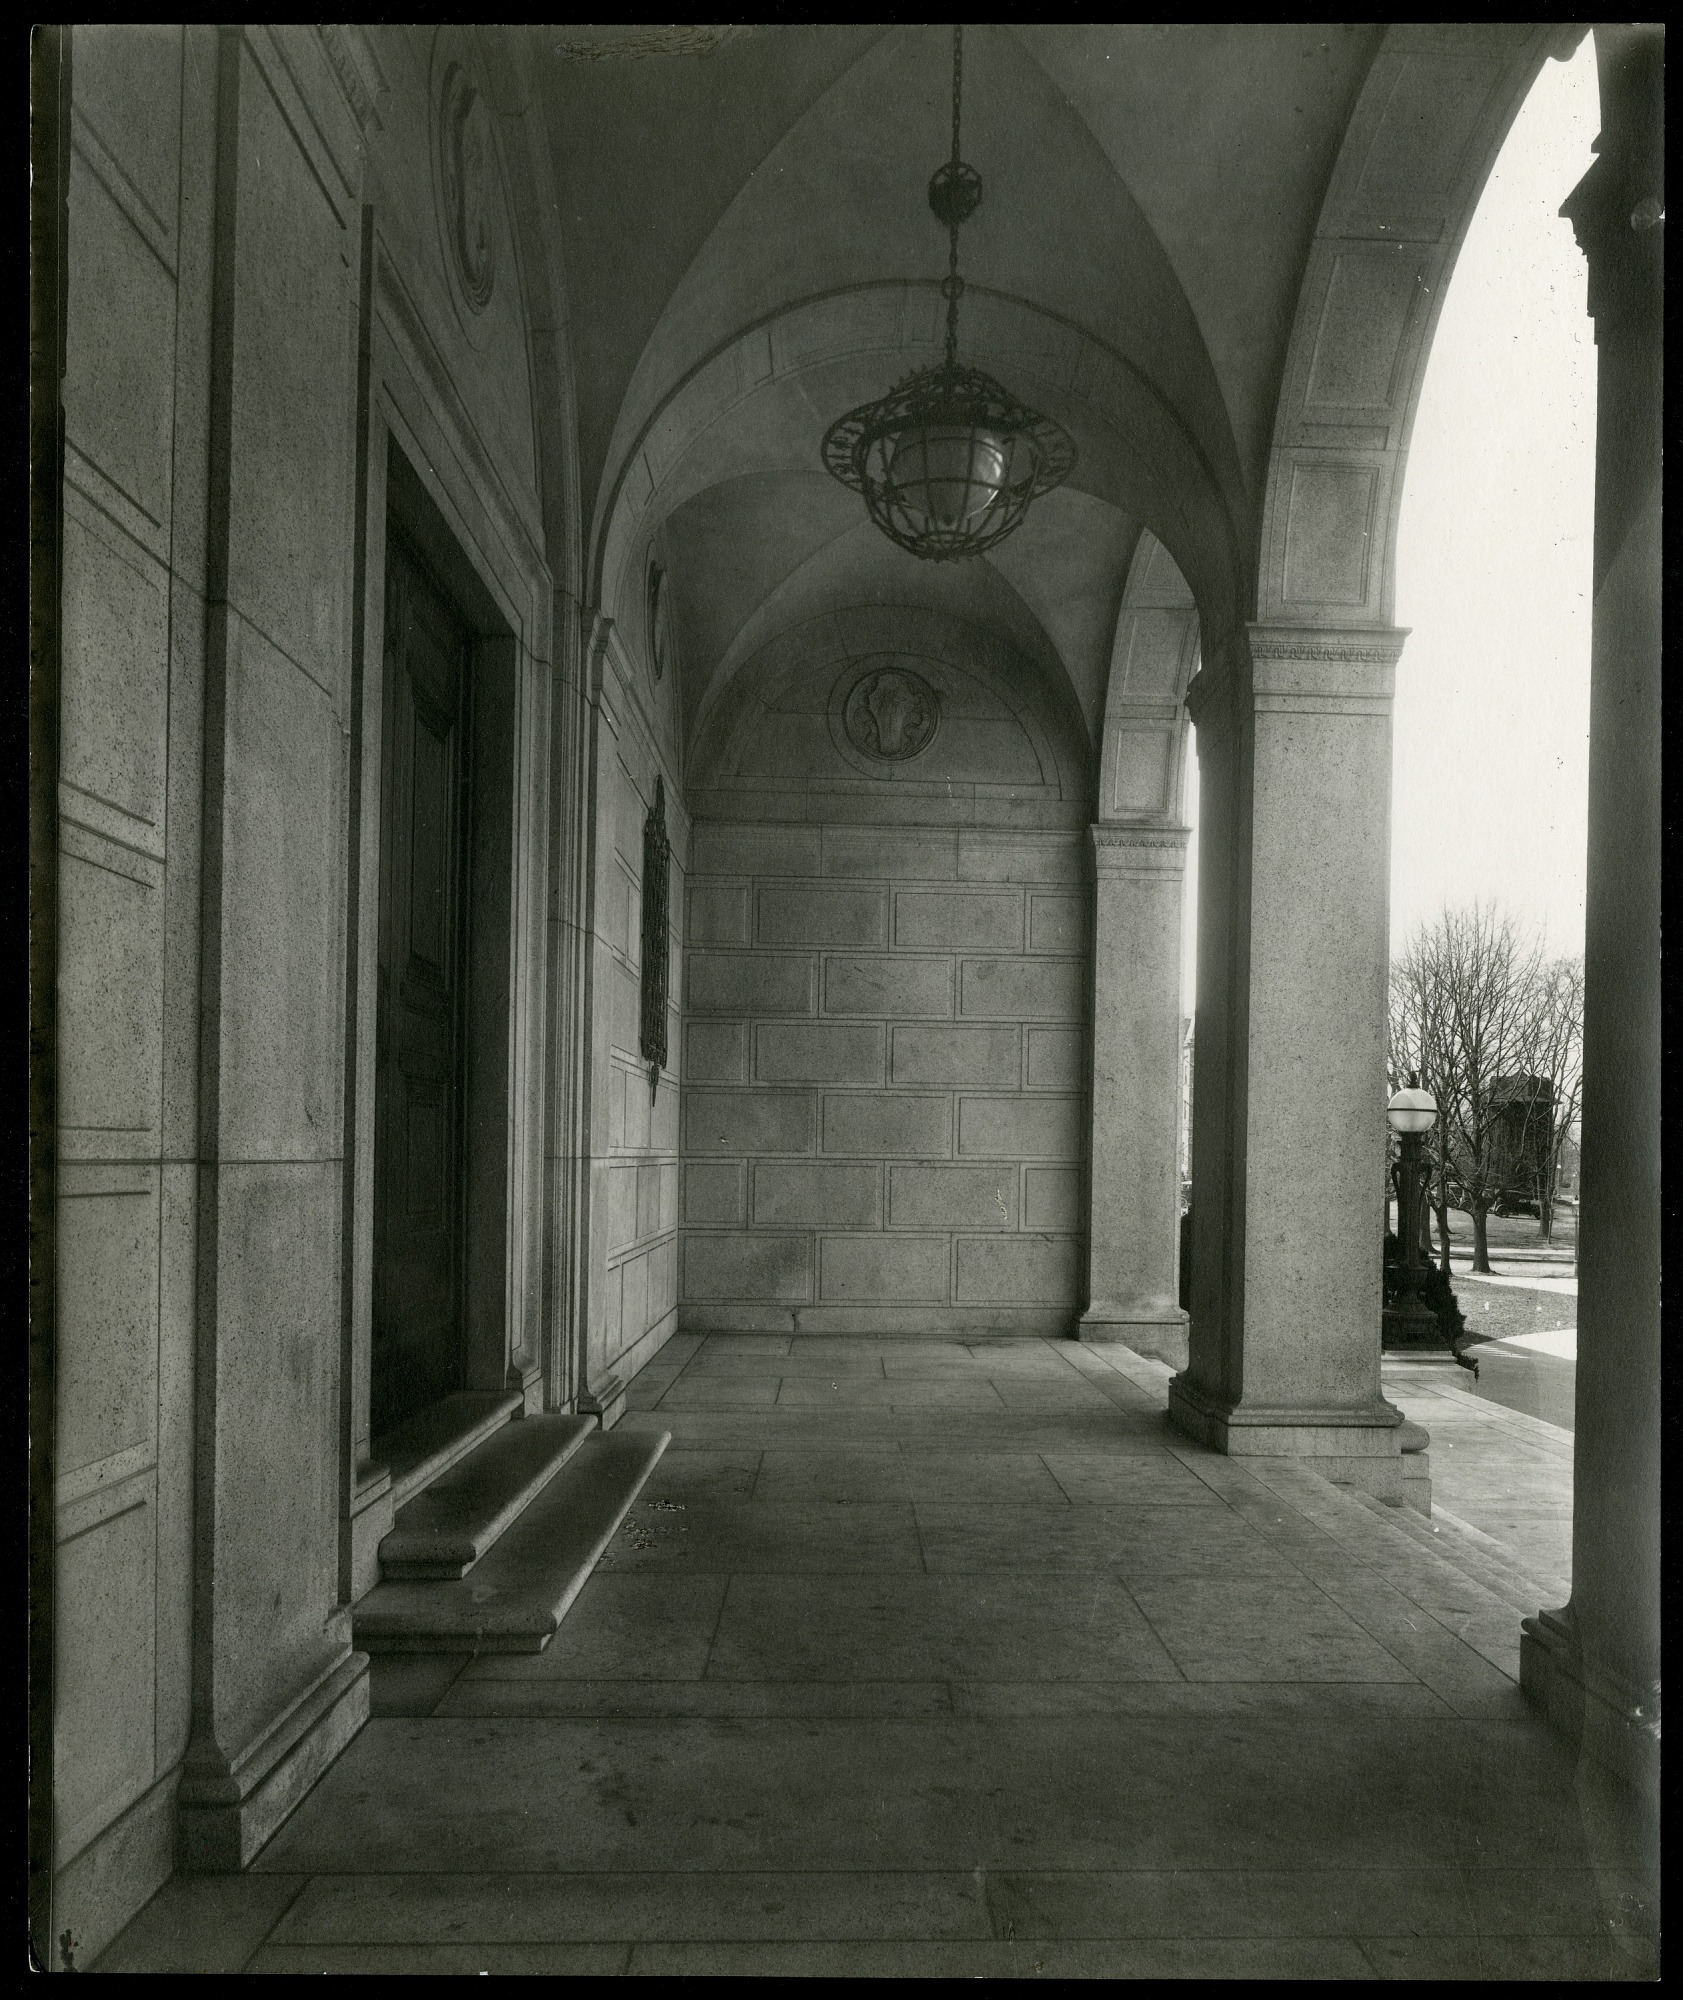 Preview of North Porch of the Freer Gallery of Art